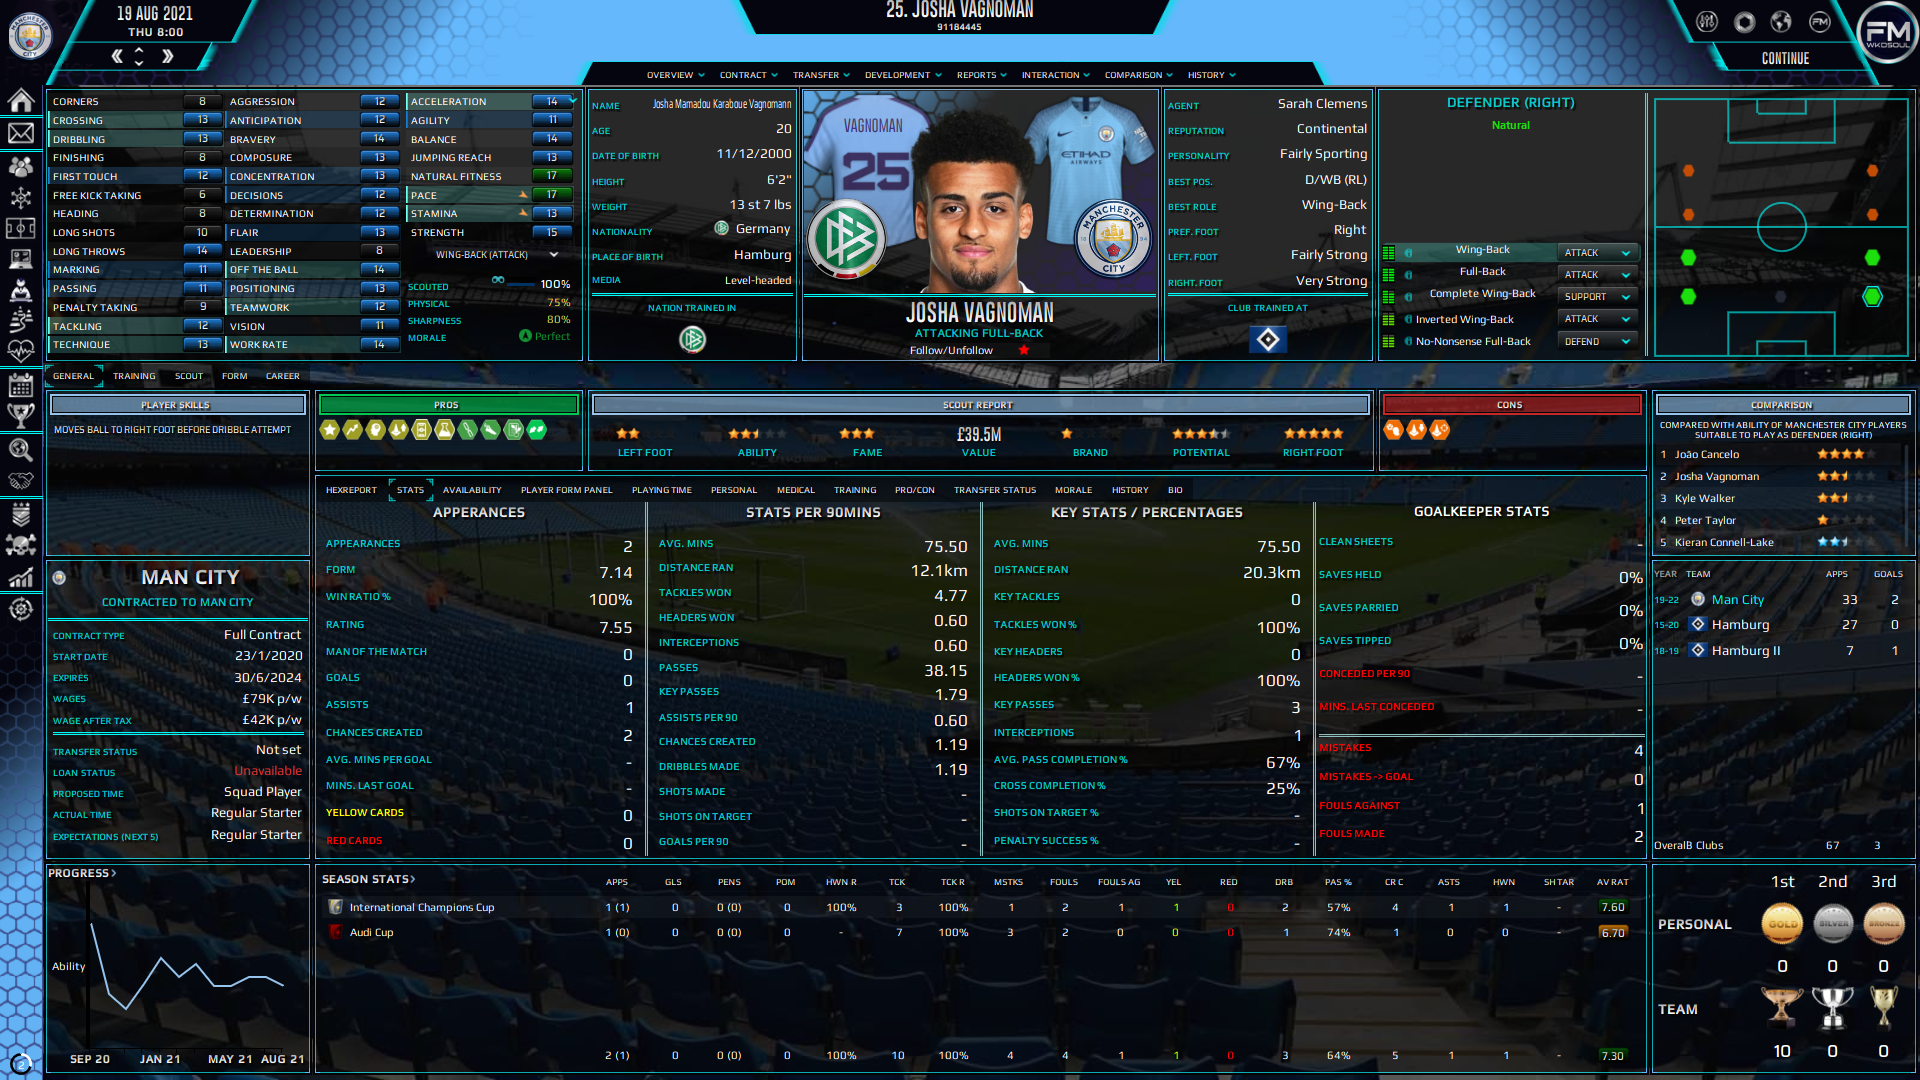 Football Manager 2020 03_07_2020 13_21_34.png